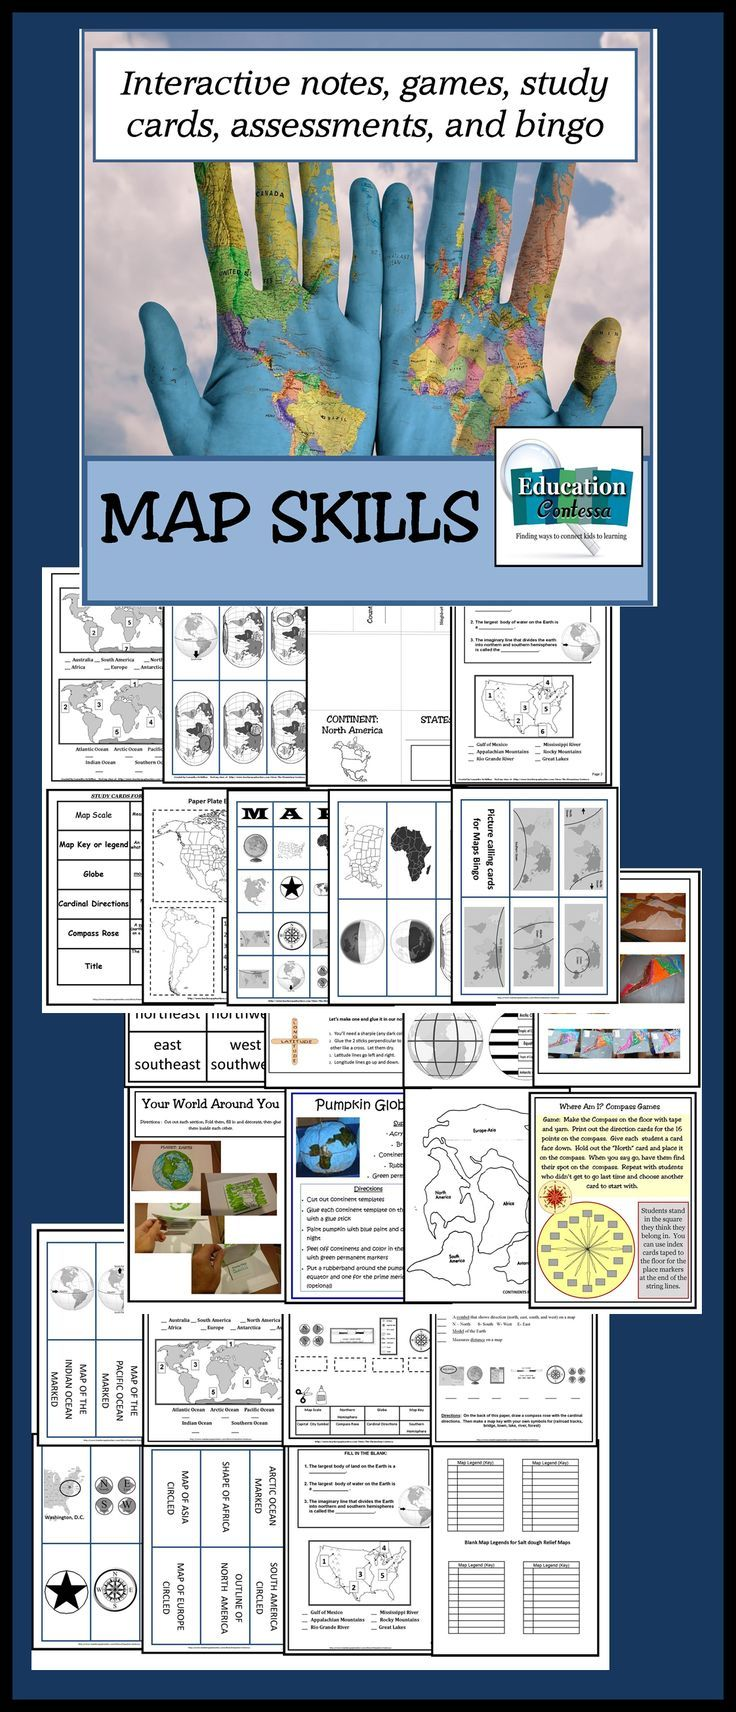 Best Ideas About Map Quiz On Pinterest Geography Map Quiz - Map of united states quiz game